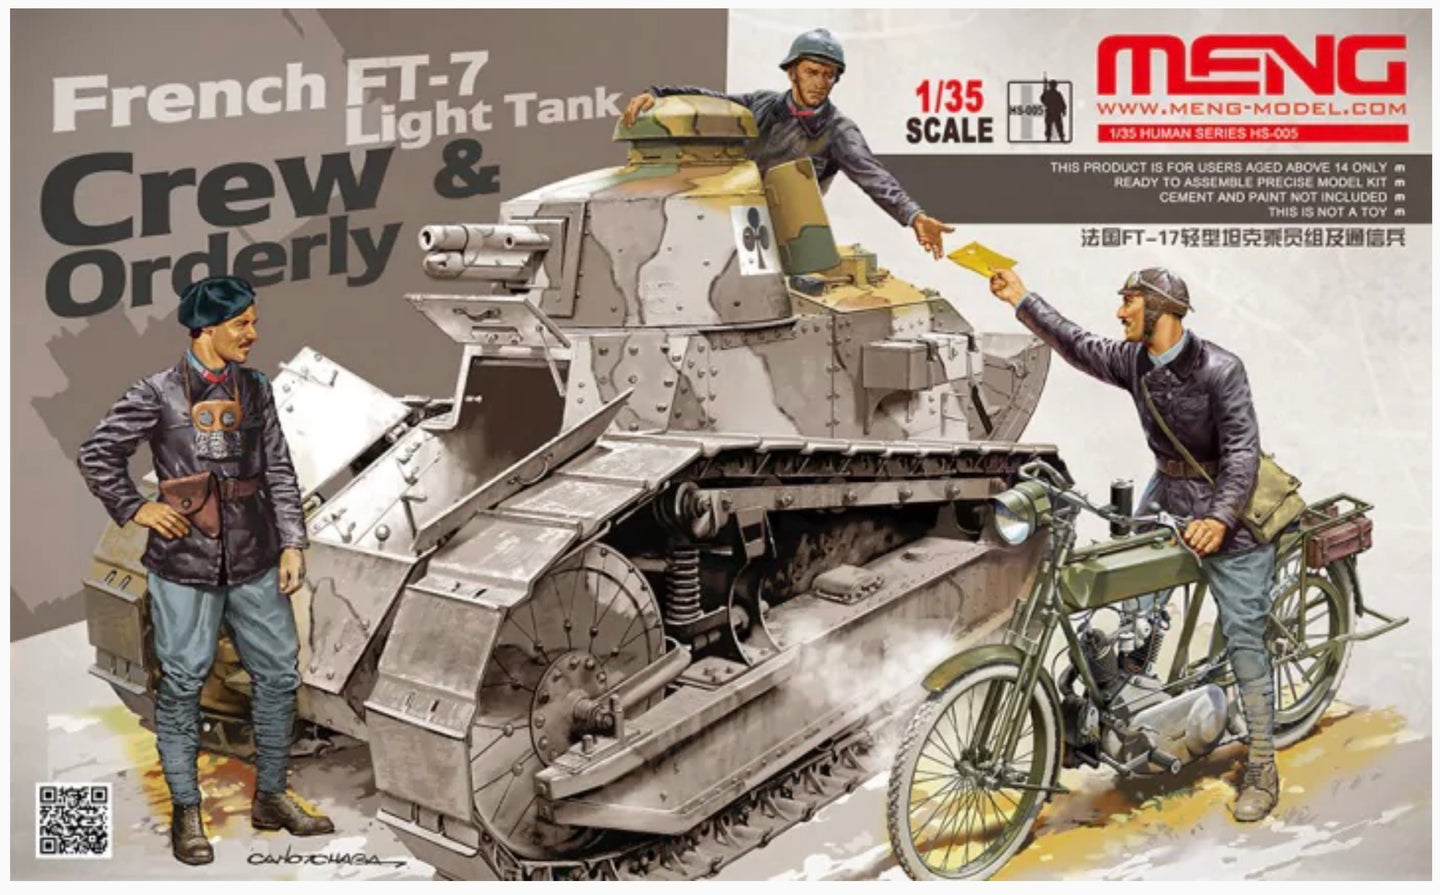 Meng 1/35 French Ft-17 Crew and Orderly HS-005